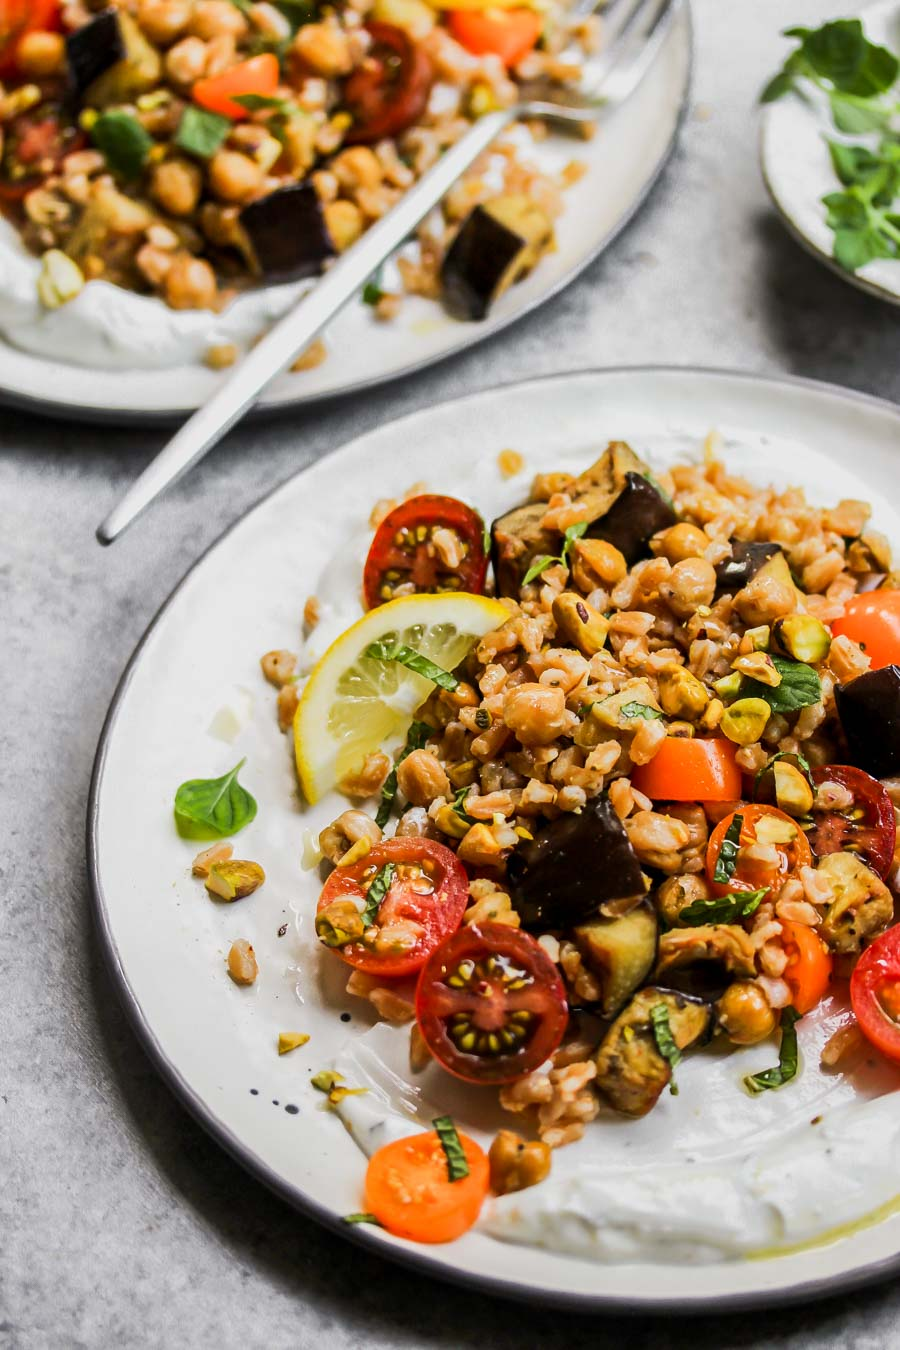 Eggplant and Chickpea Salad with Farro and Minty Yogurt